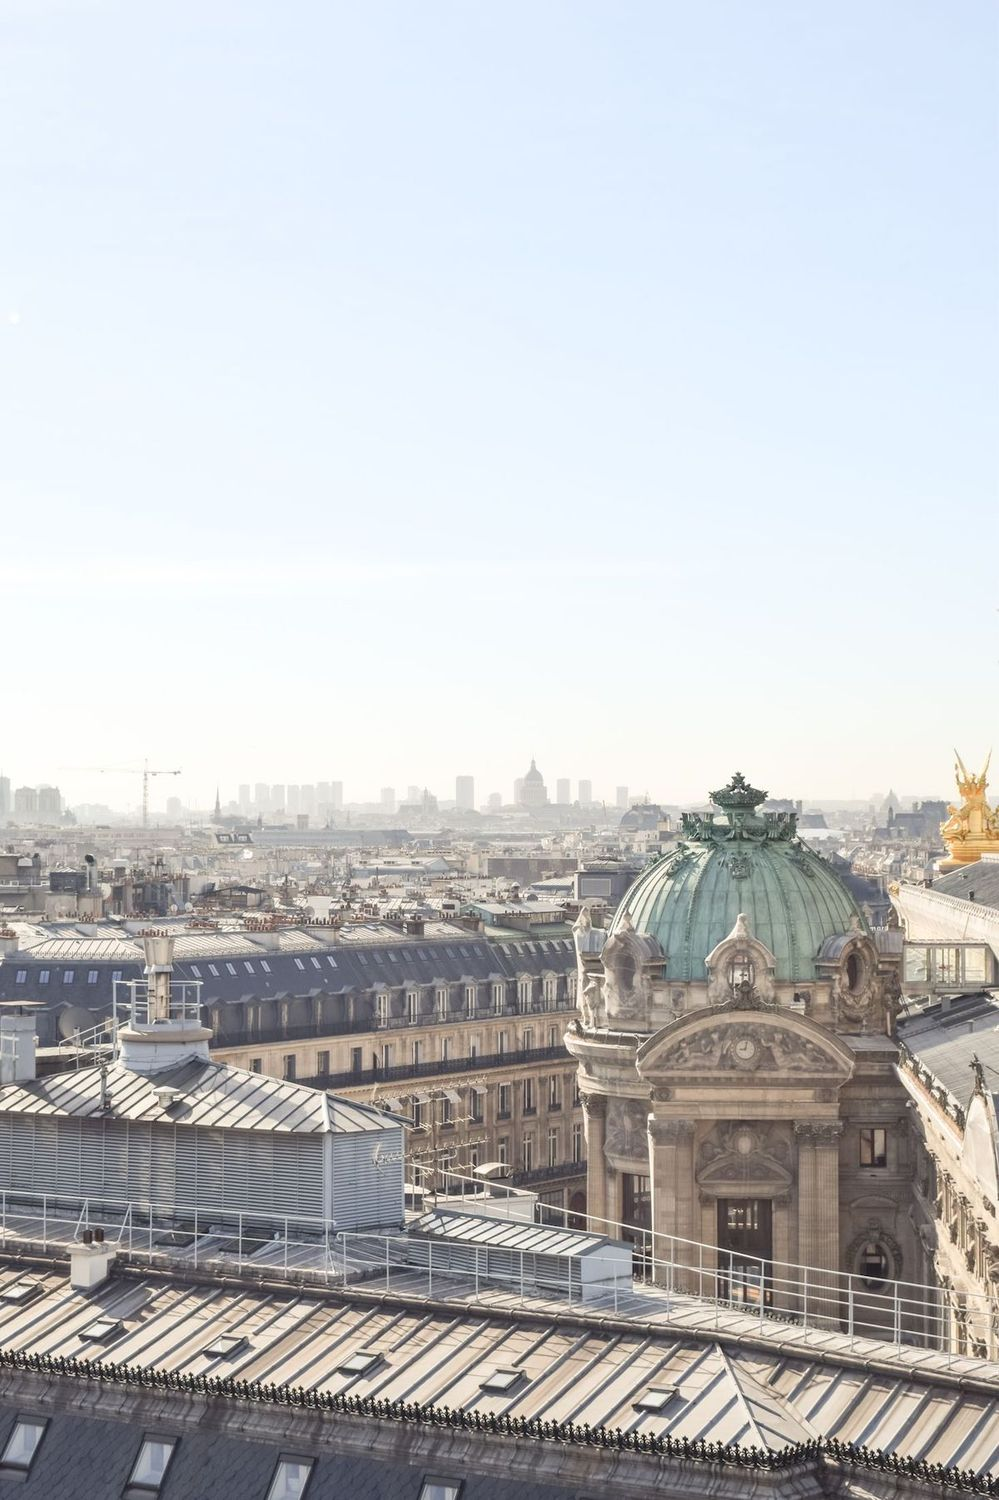 View from Galeries Lafayette, Paris